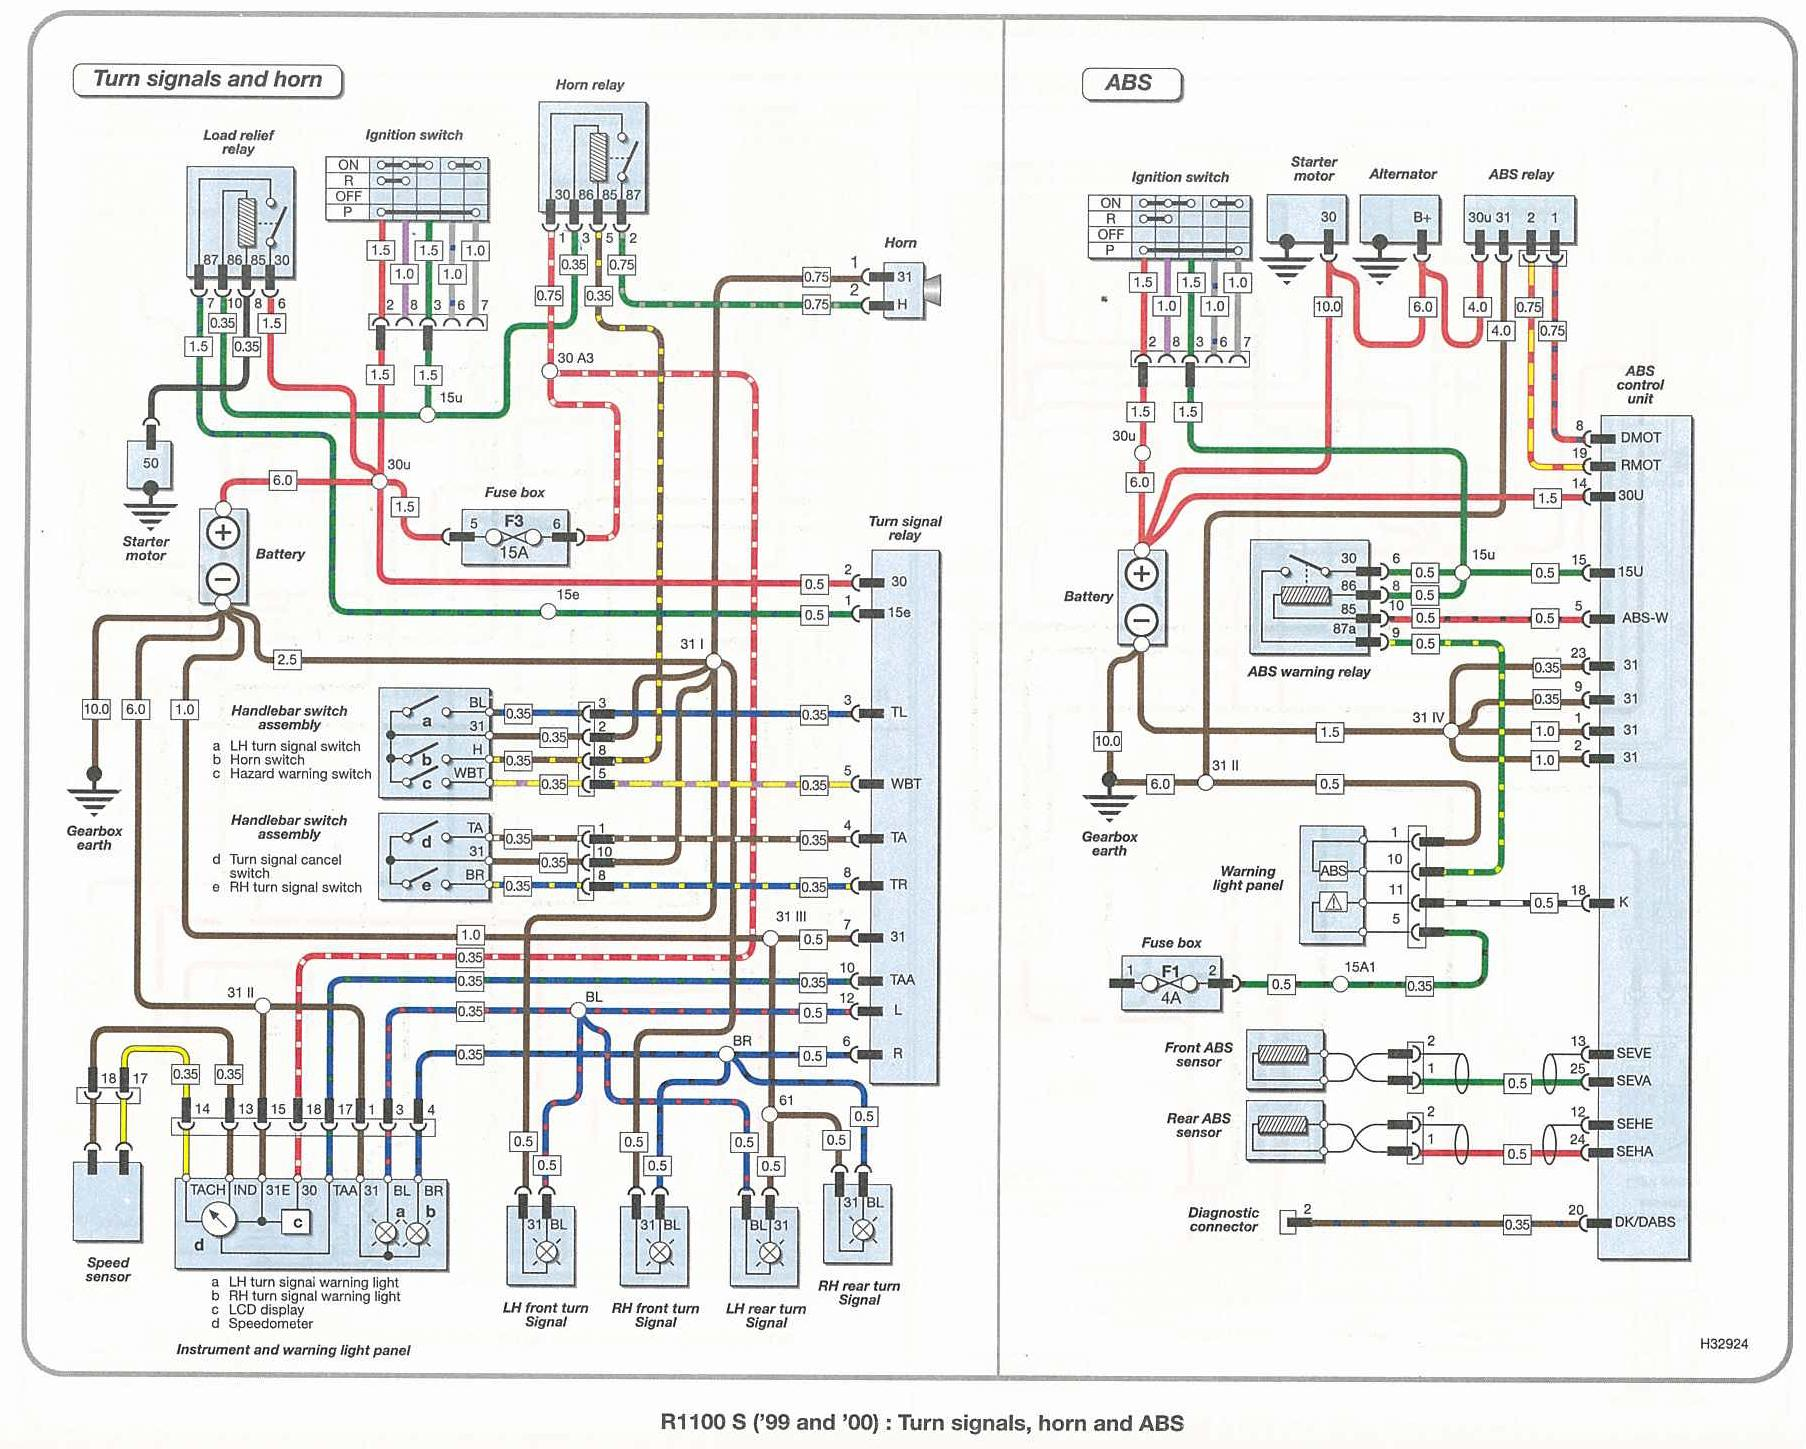 wiring03 bmw r1100s wiring diagrams r1100rt wiring diagram at mifinder.co